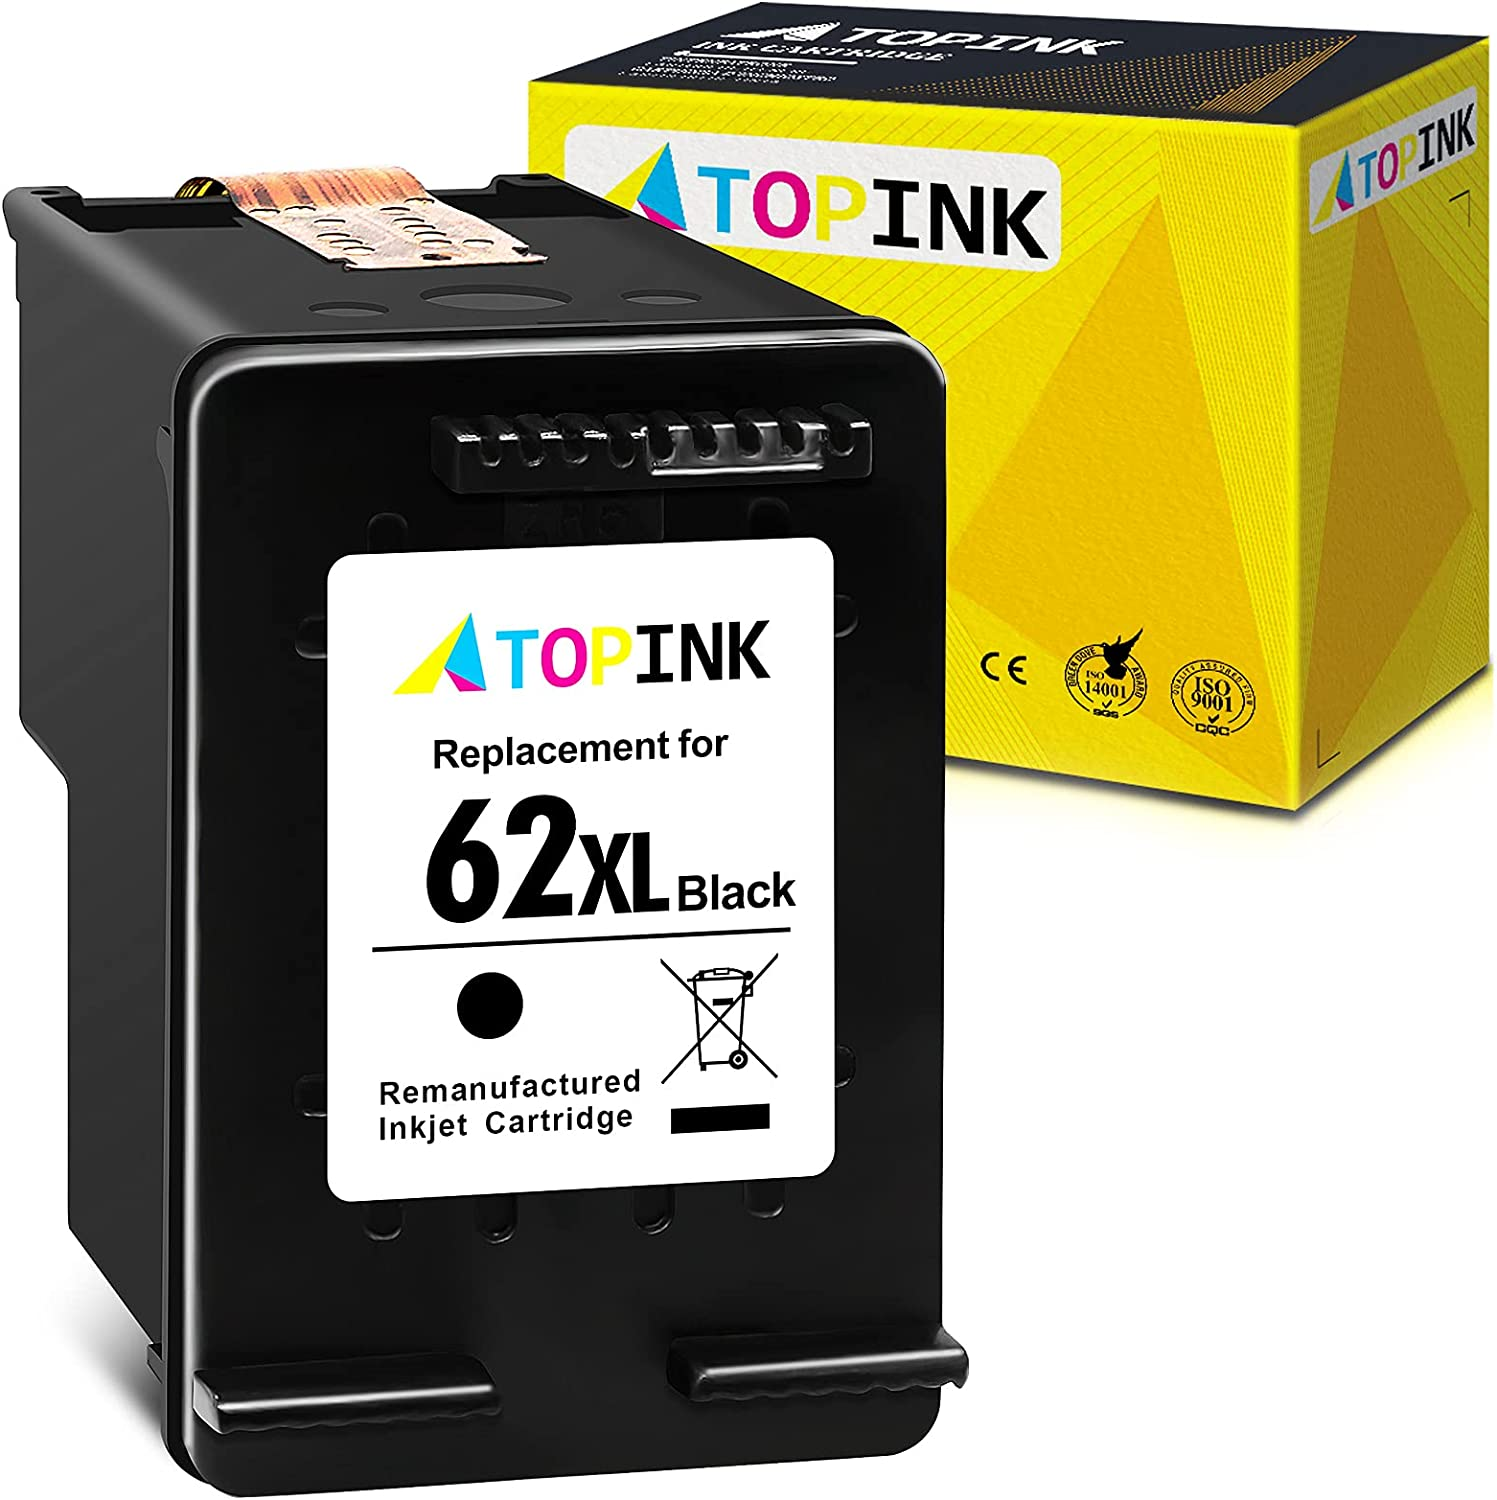 ATOPINK Remanufactured Ink Cartridge Replacement for HP 62XL 62 XL Compatible with OfficeJet 5740 250 5745 200 8040 5744 Envy 7640 5660 5540 5640 5661 5642 5542 5643 5665 5663 5664 7643 (Black) 1-Pack